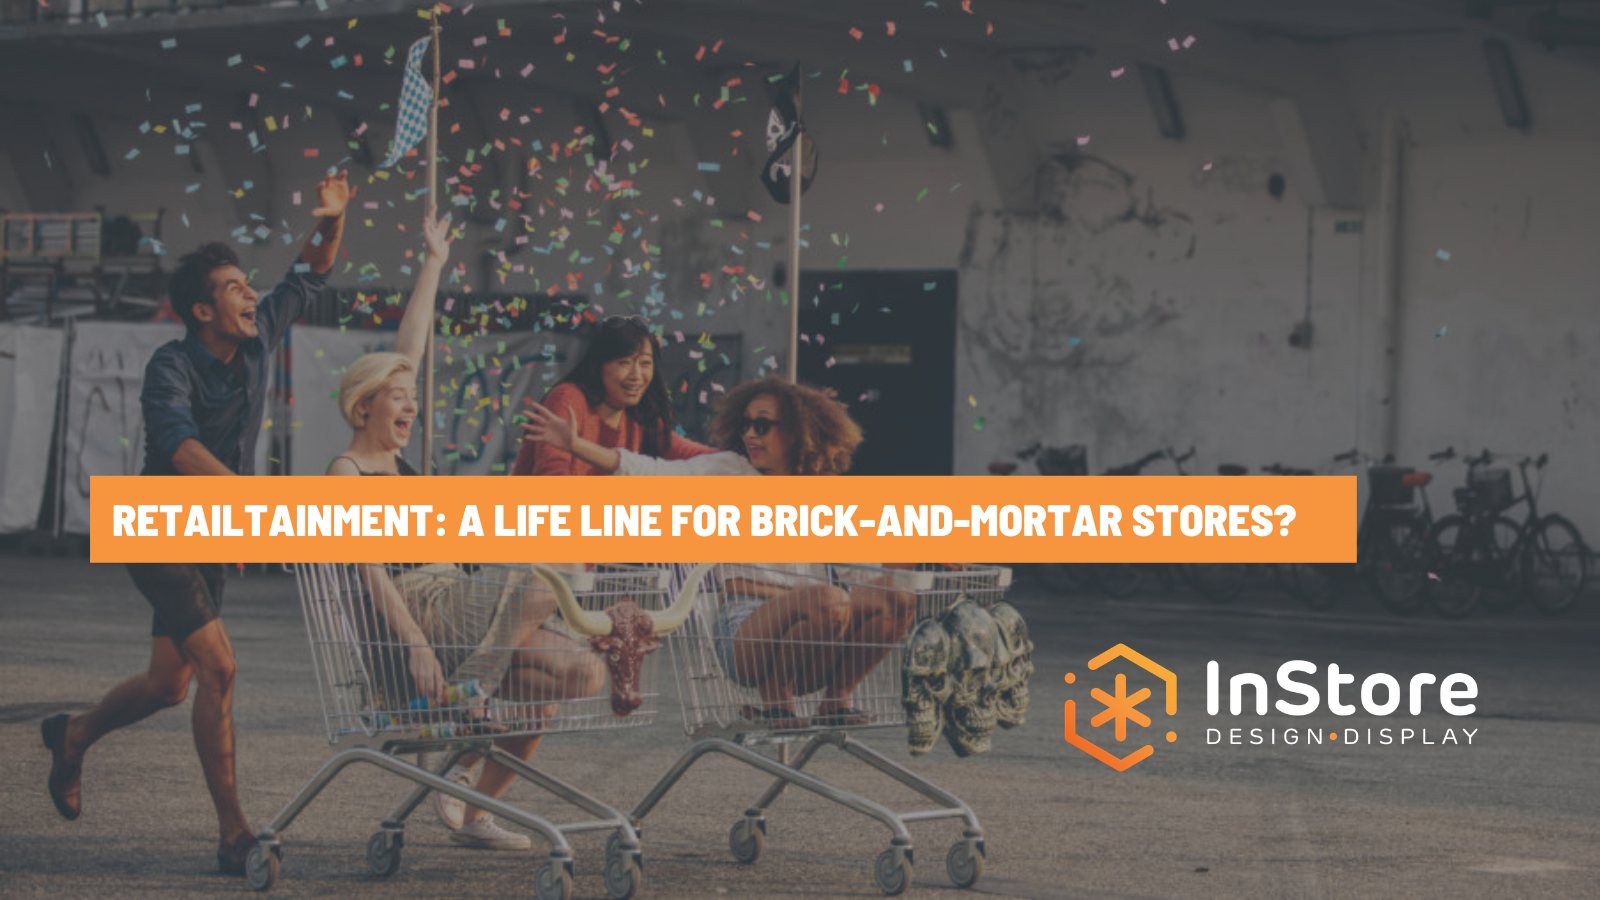 Retailtainment: How Experiential Retailing Can Save Brick-and-Mortar Stores